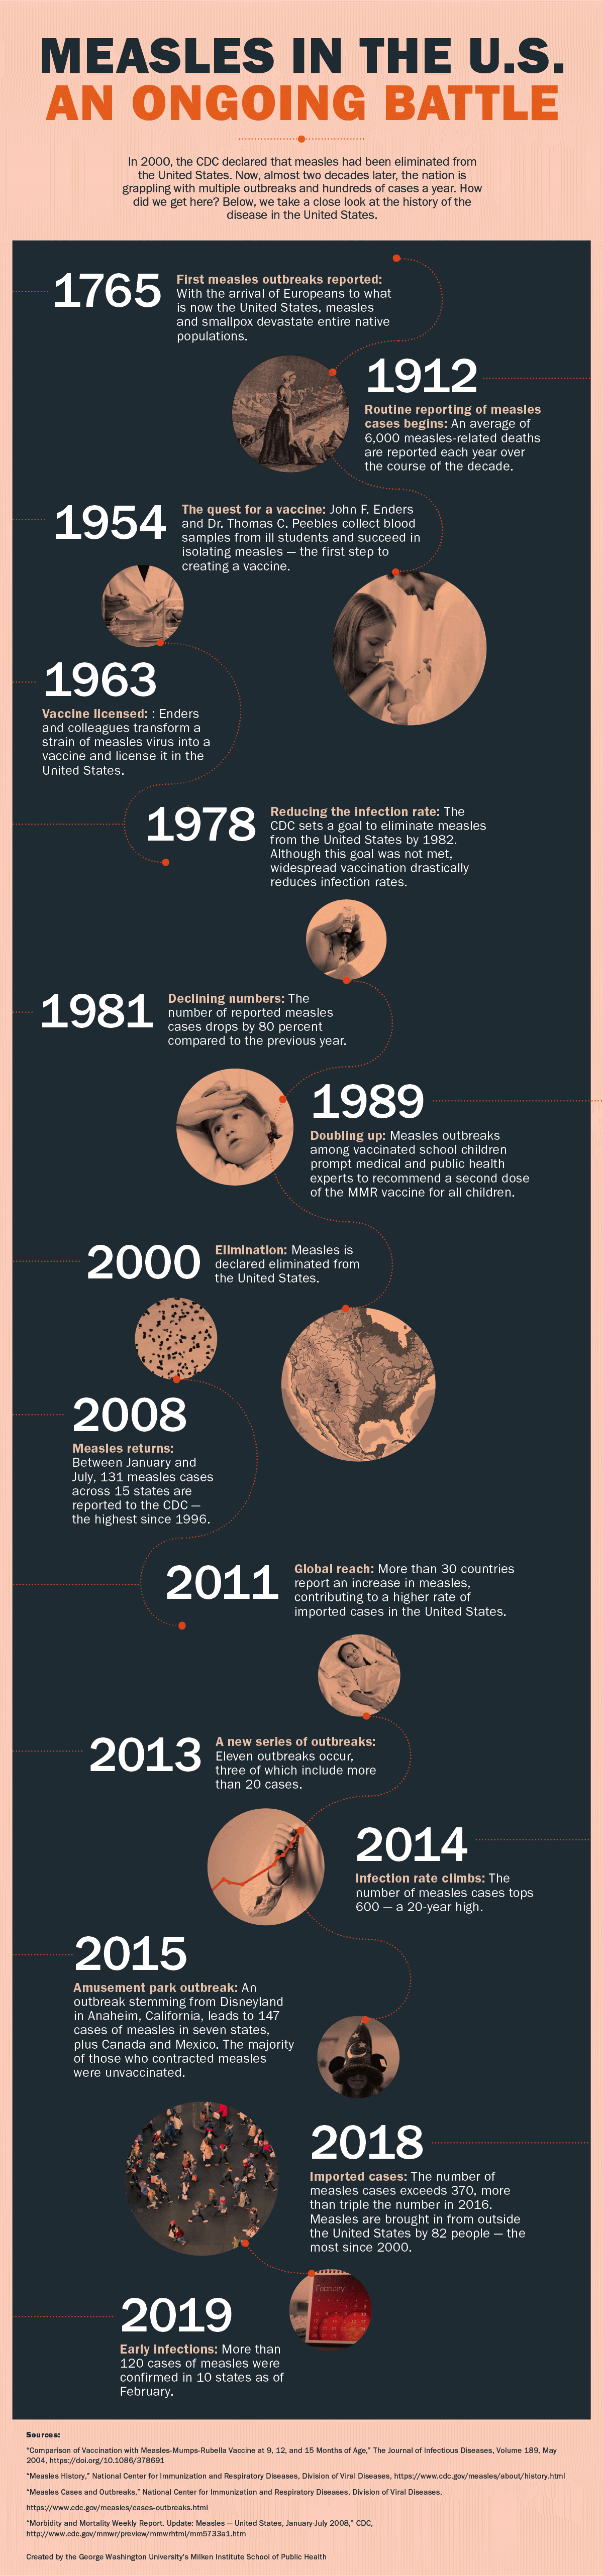 Measles History